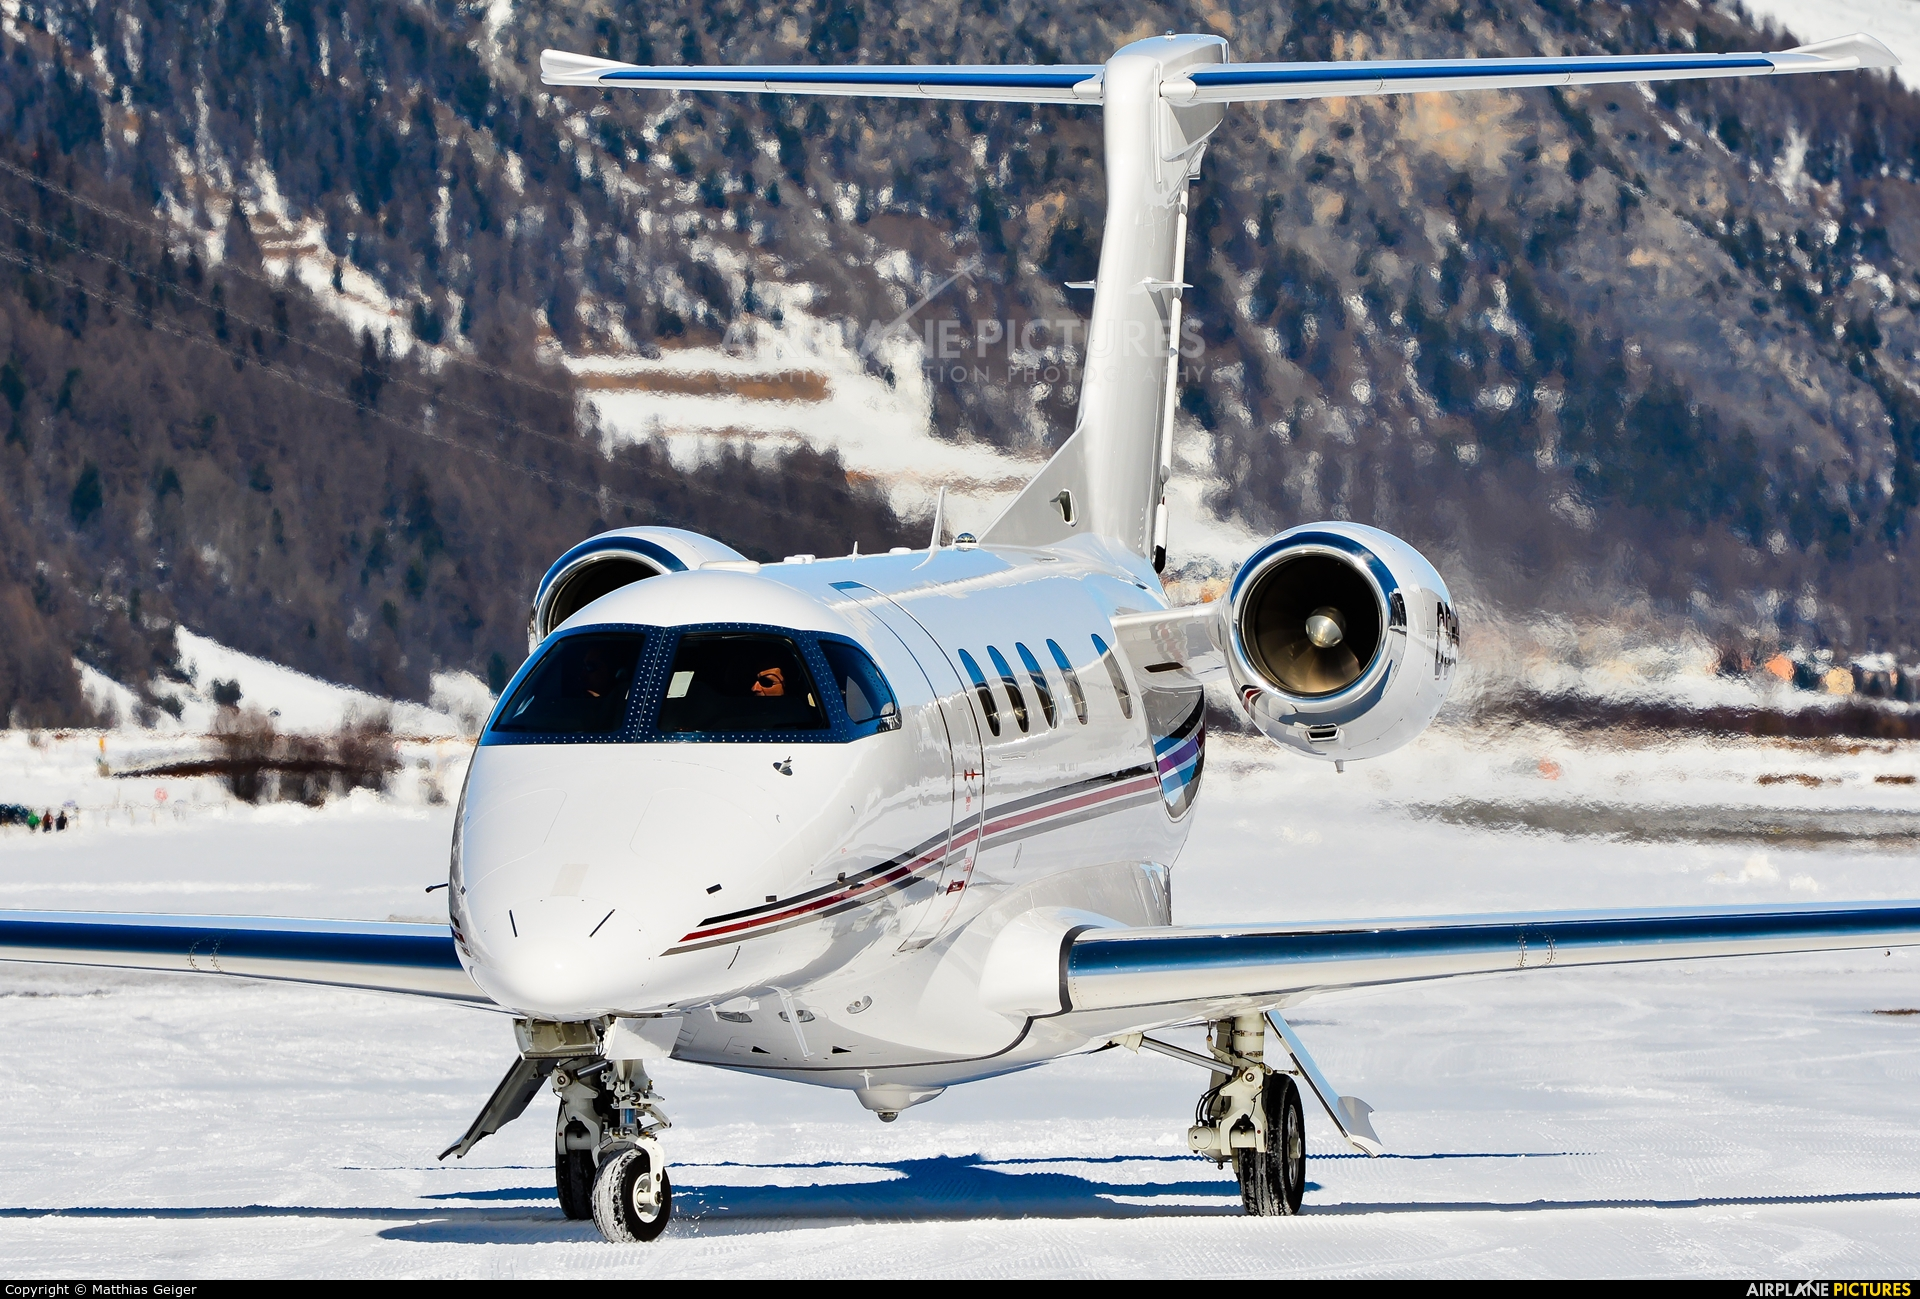 NetJets Europe (Portugal) CS-PHB aircraft at Samedan - Engadin